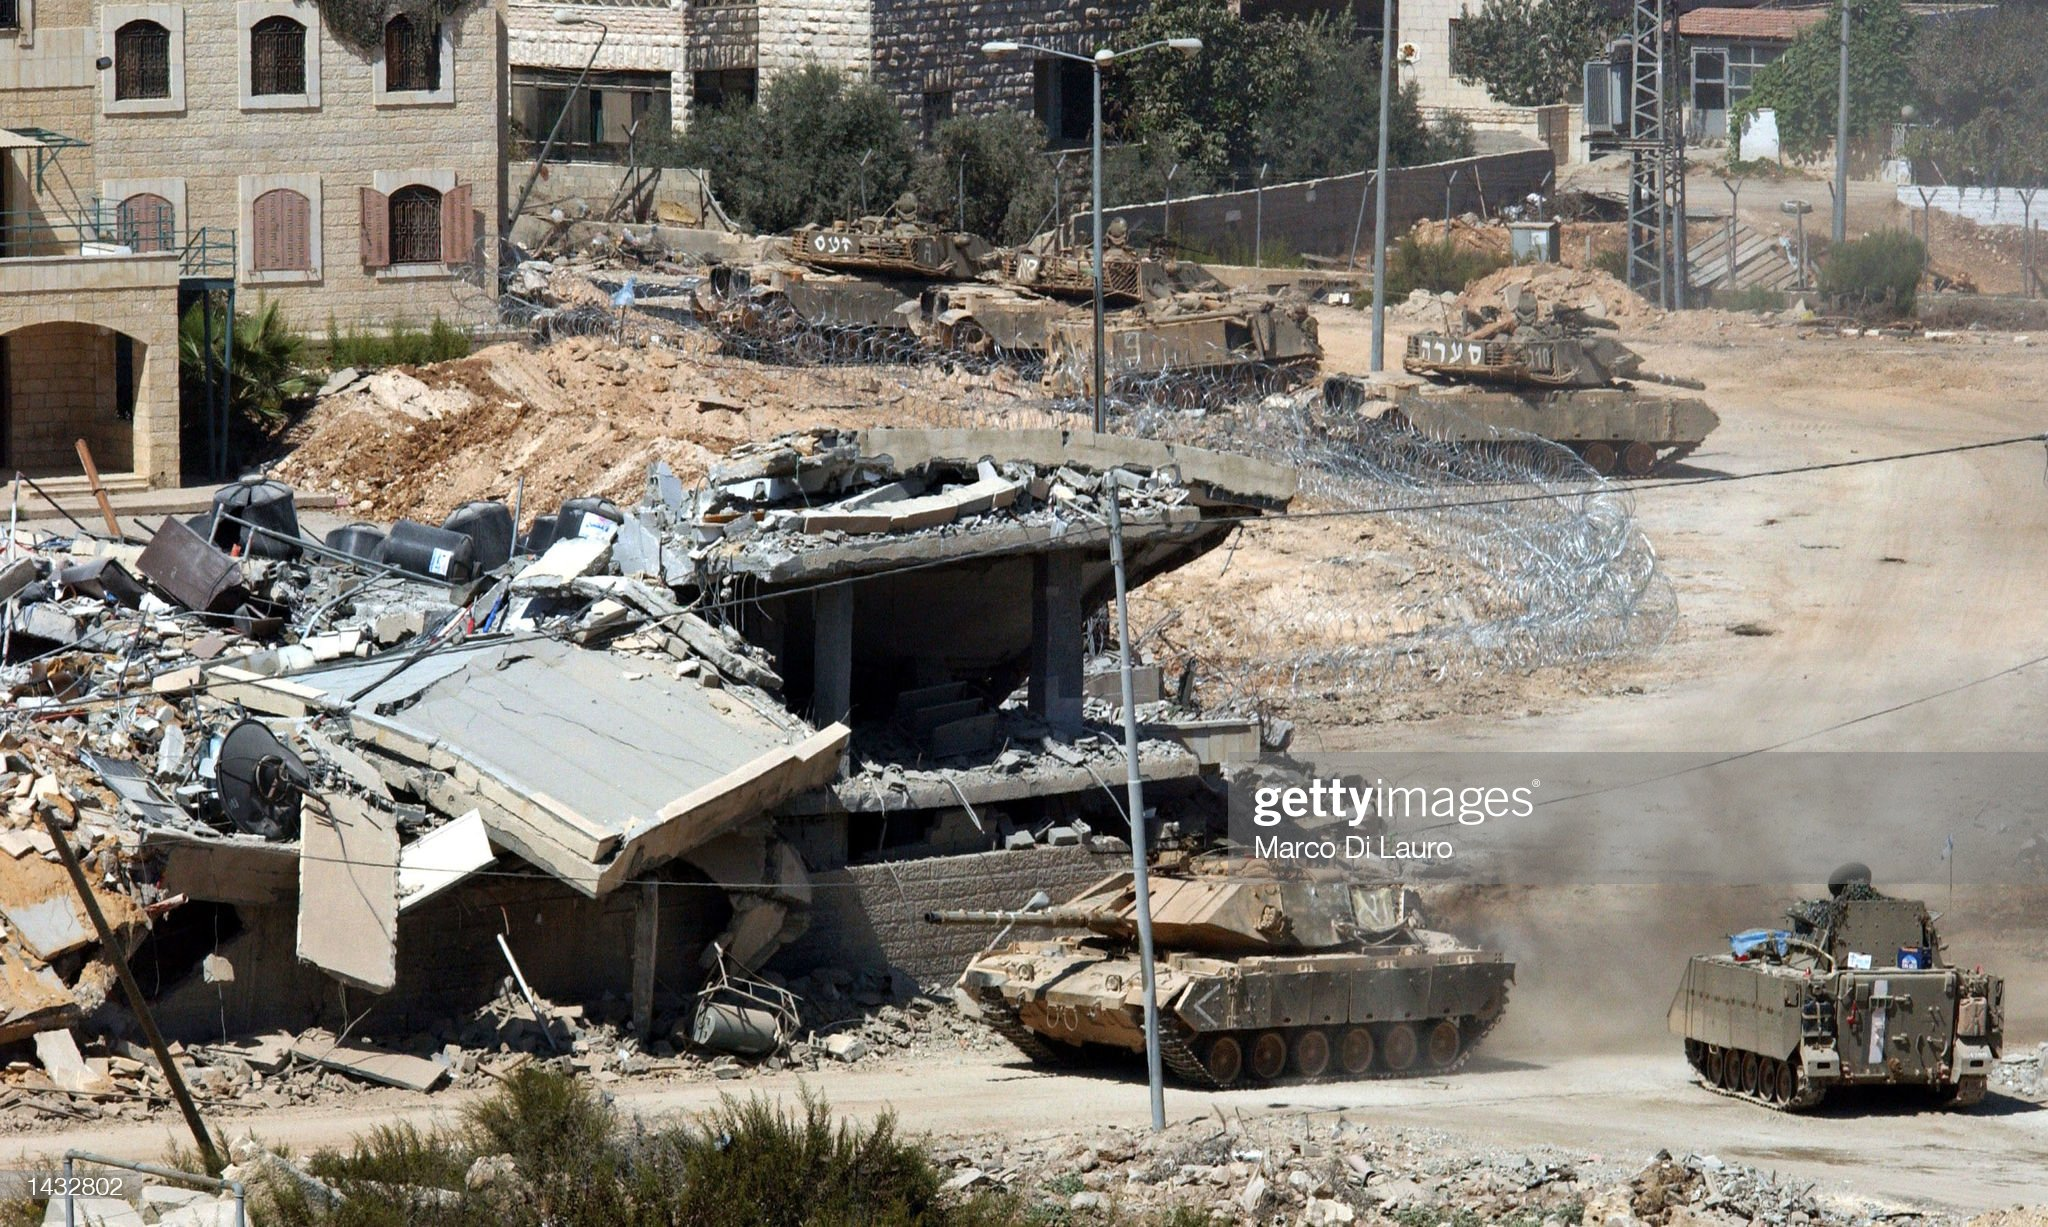 https://media.gettyimages.com/photos/an-israeli-army-tank-rolls-into-palestinian-leader-yasser-arafats-picture-id1432802?s=2048x2048